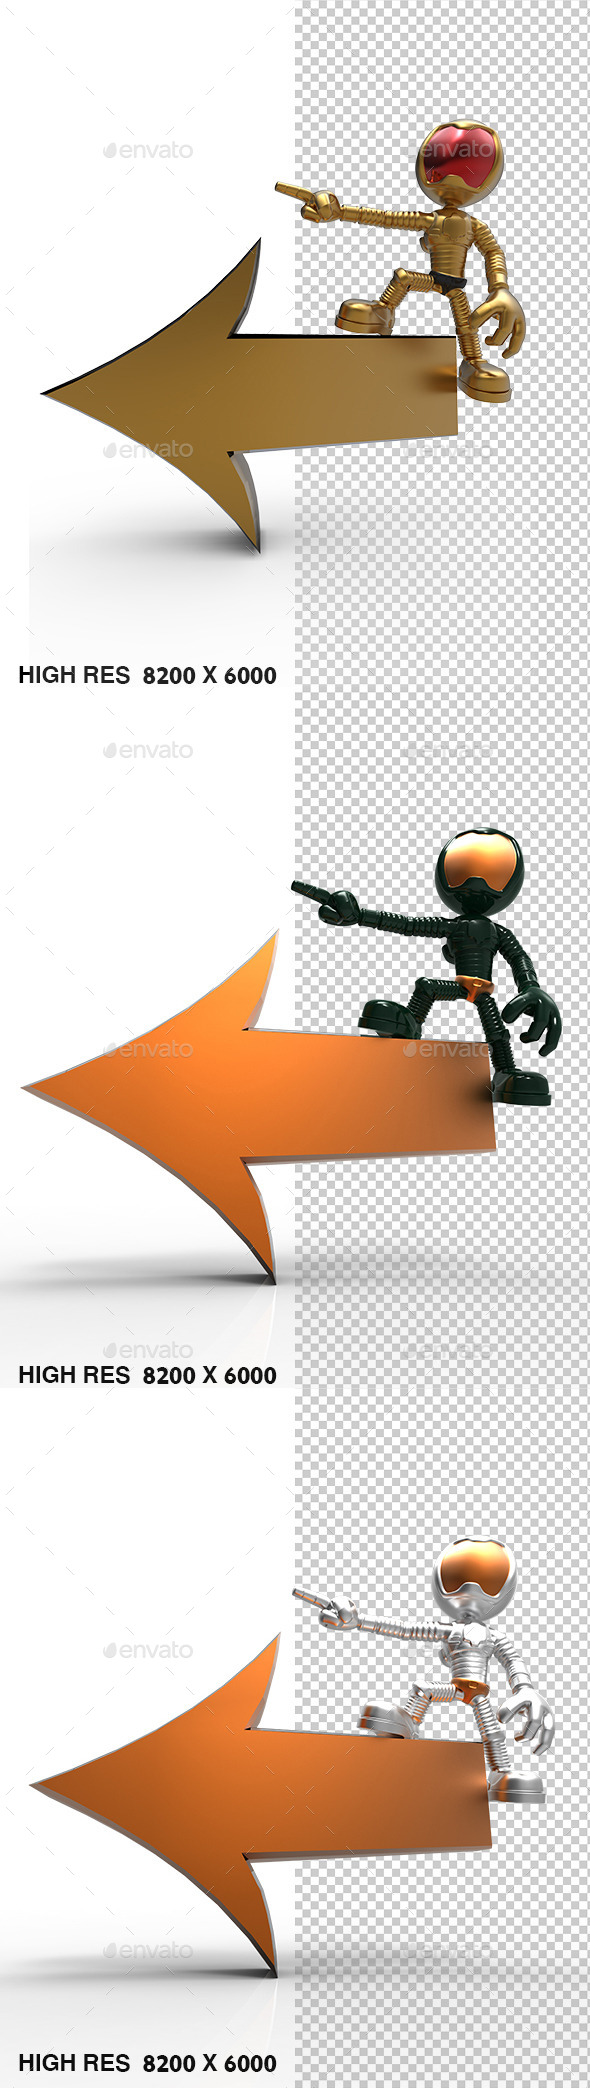 3D Gold Astronaut Tell Left Direction - Characters 3D Renders